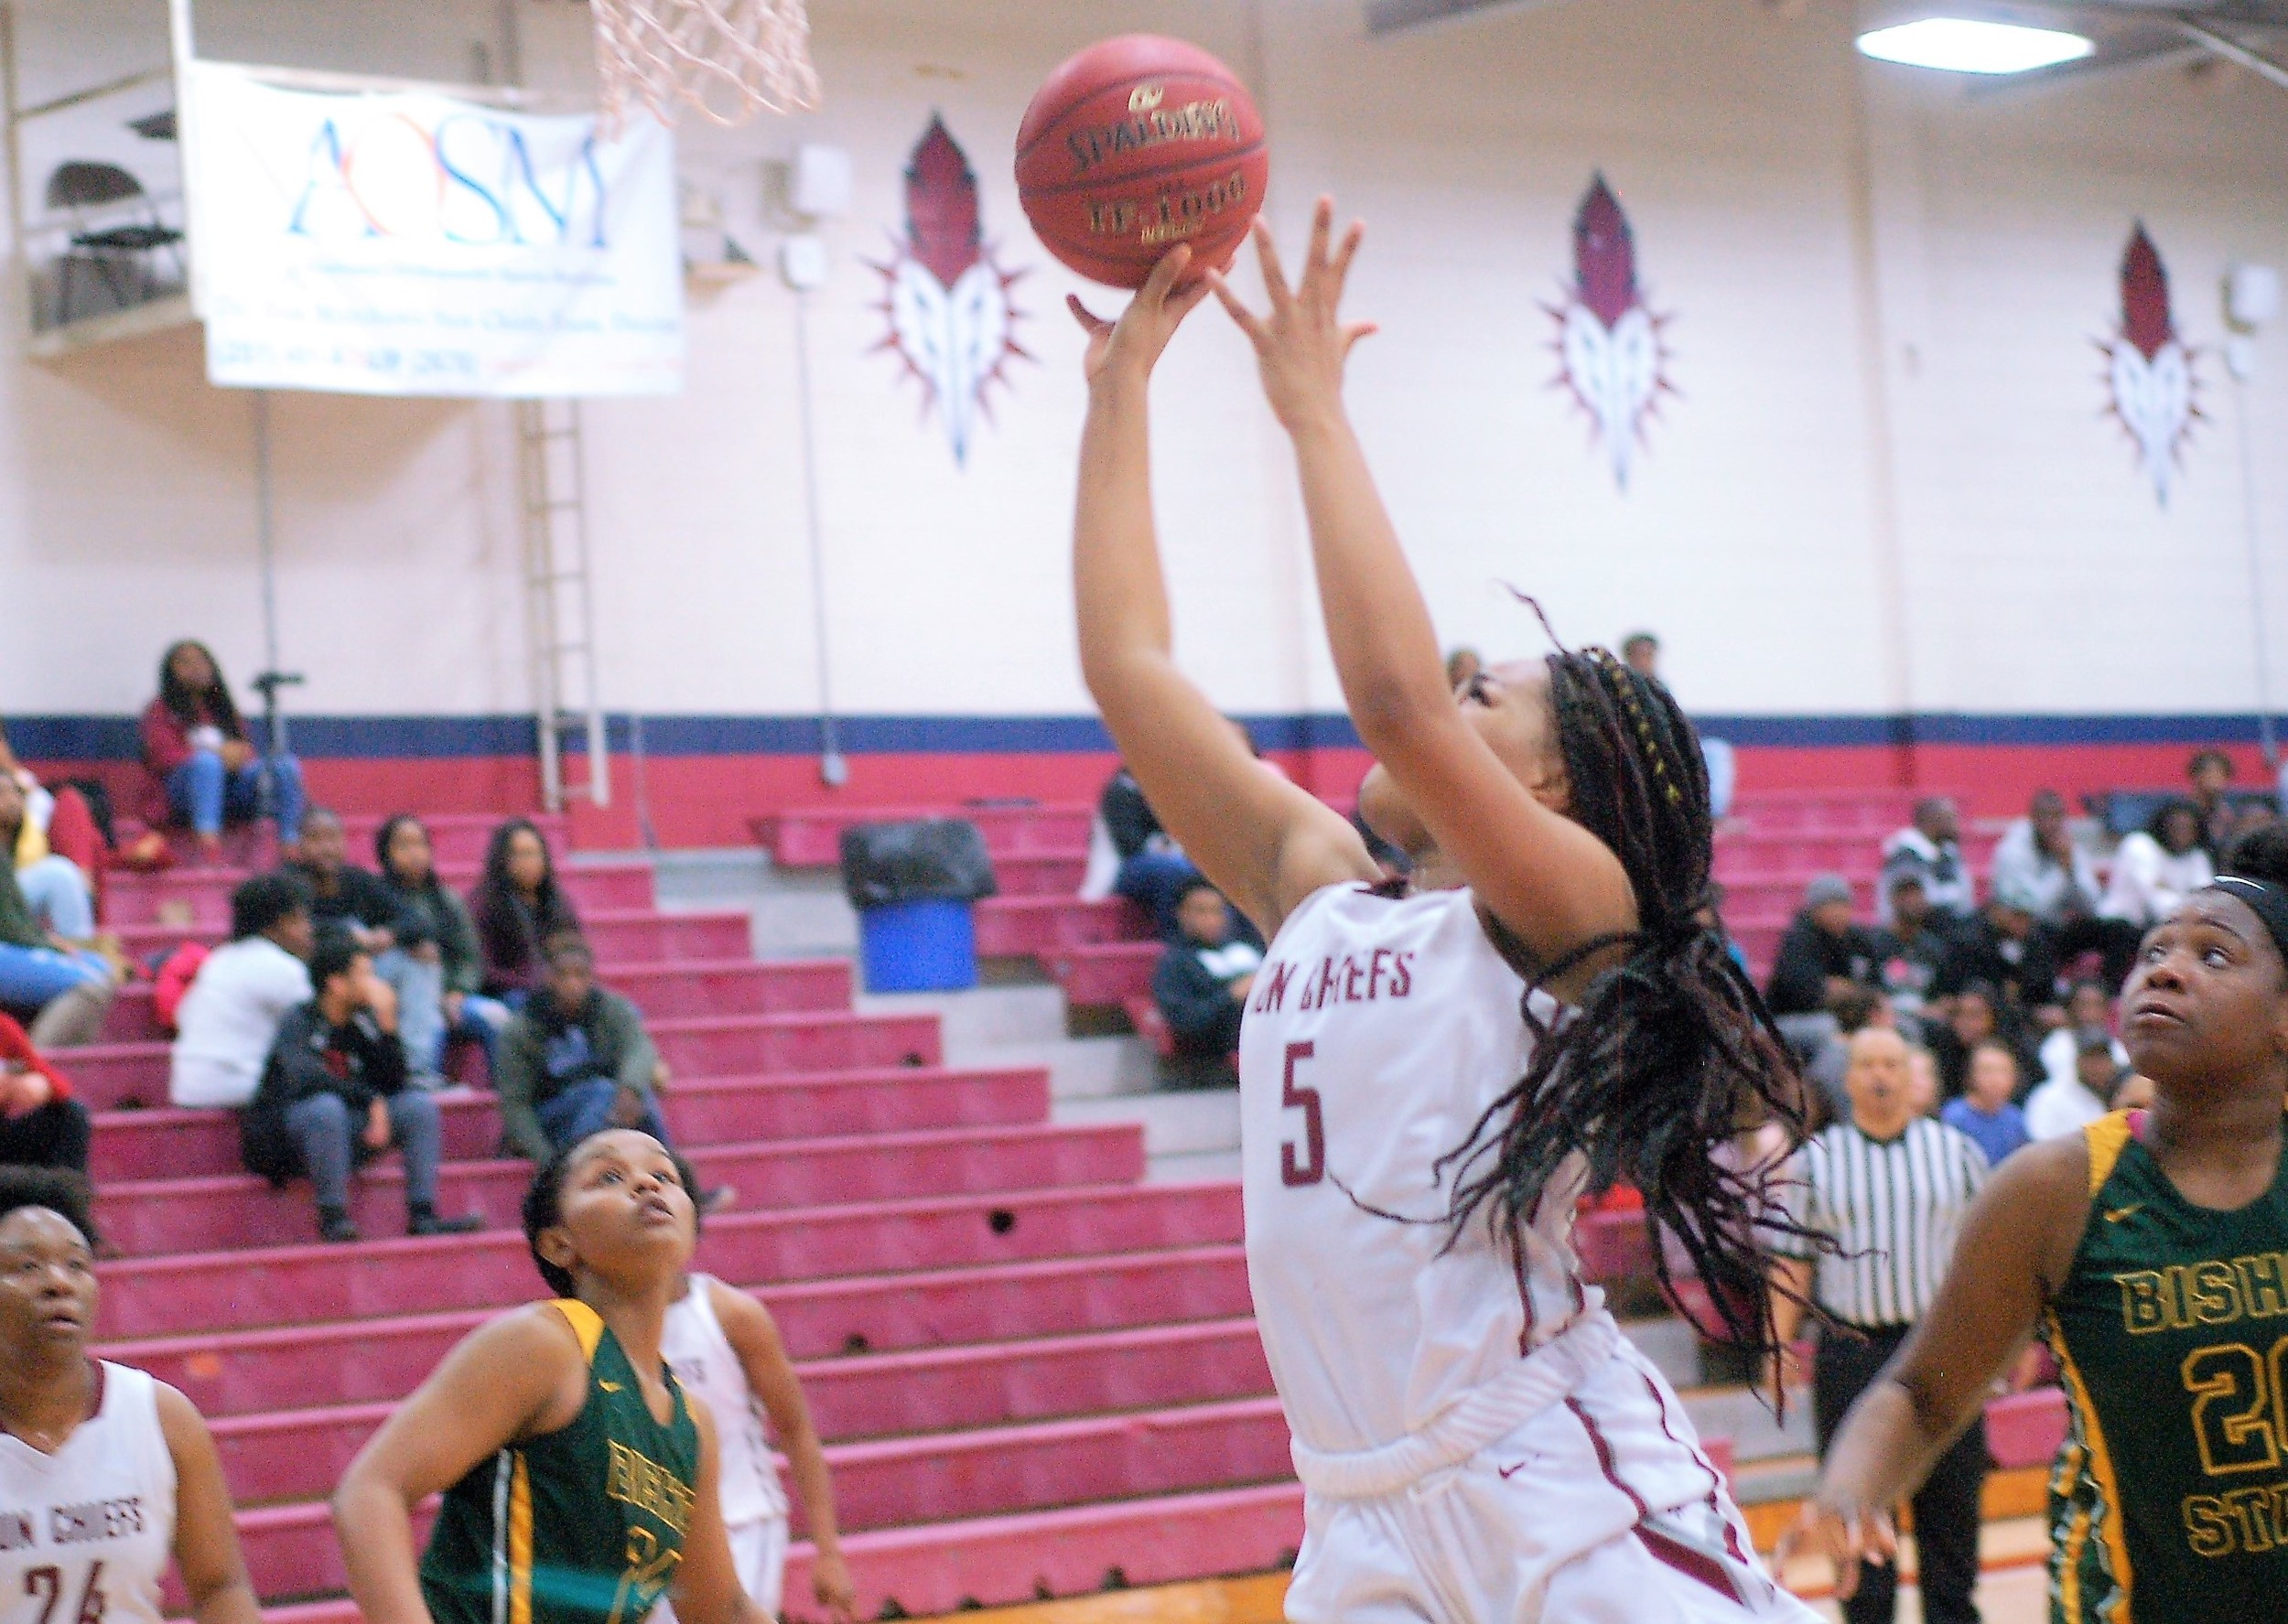 Adiya Matthews (5) drives to the hoop for Coastal South.